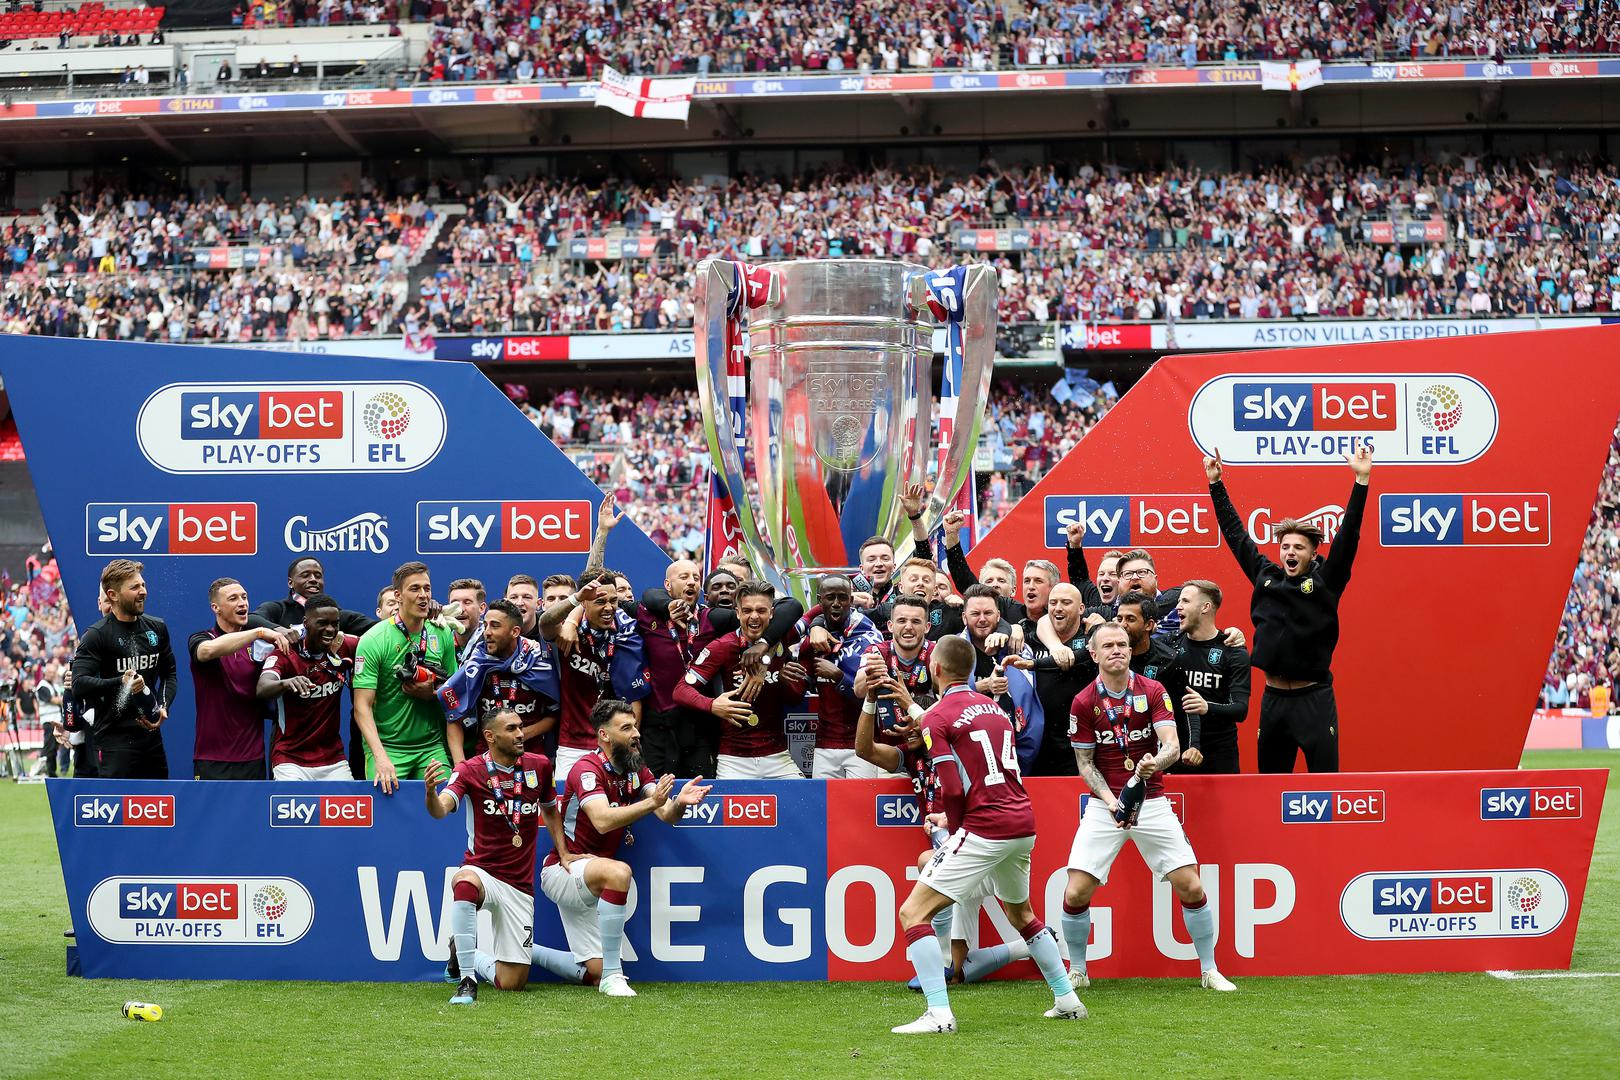 Aston Villa celebrate after winning the Championship play-off final at Wembley